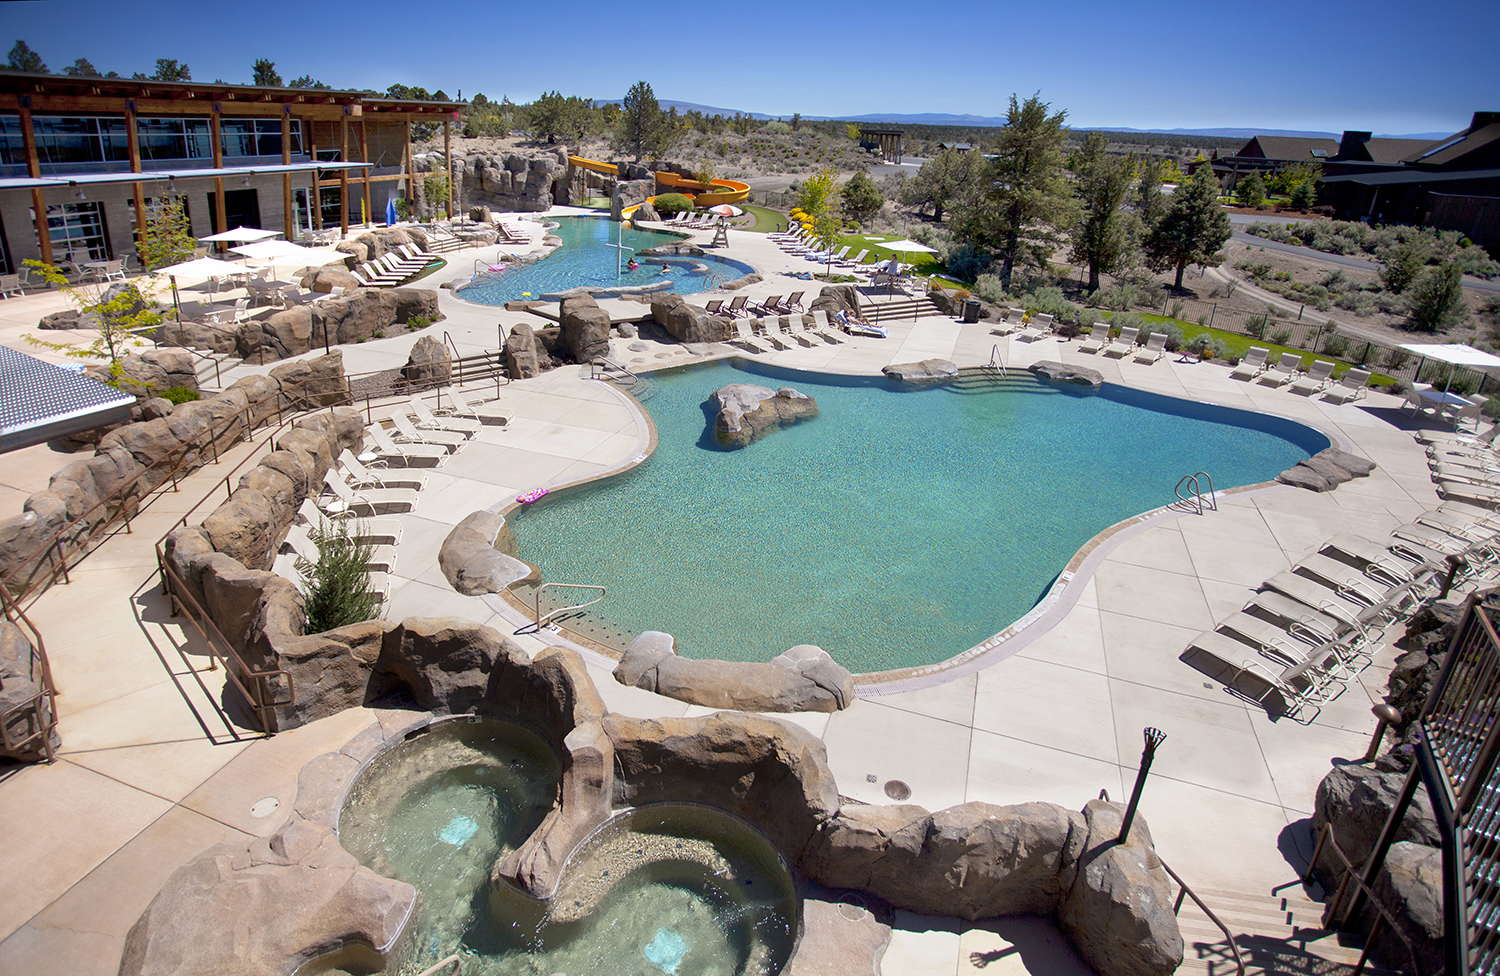 Take a dip in the heated outdoor pool, complete with a waterslide and lazy river.